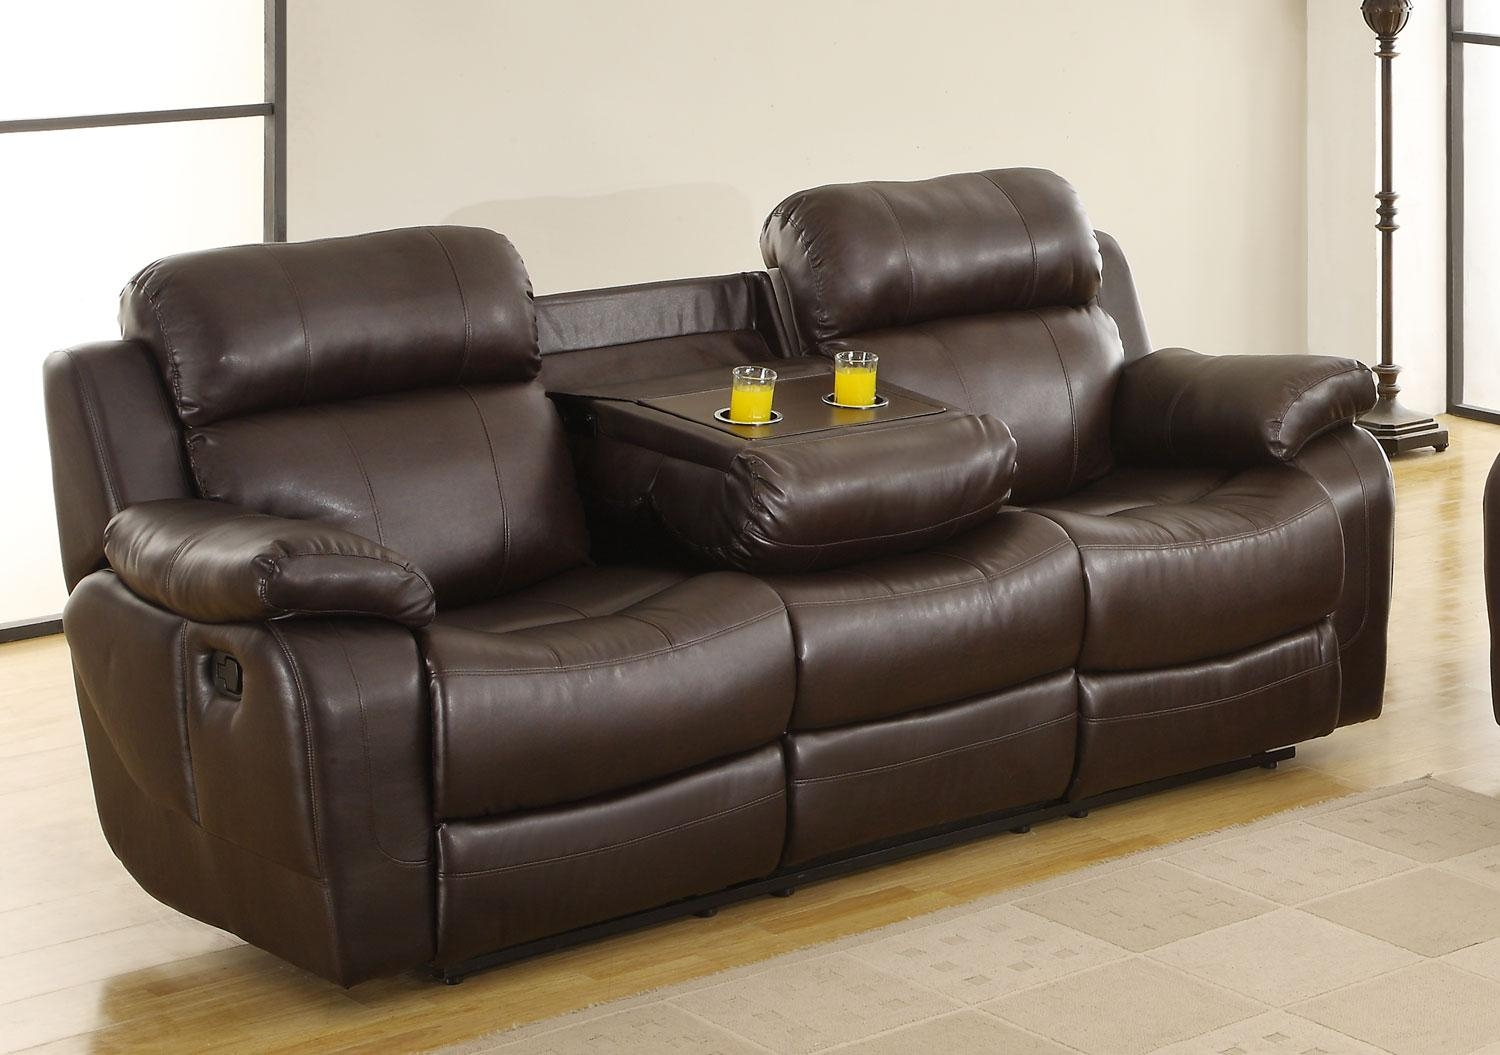 Sofas Center : Striking Double Recliner Sofa With Console Photos In Sofas With Console (Image 19 of 20)